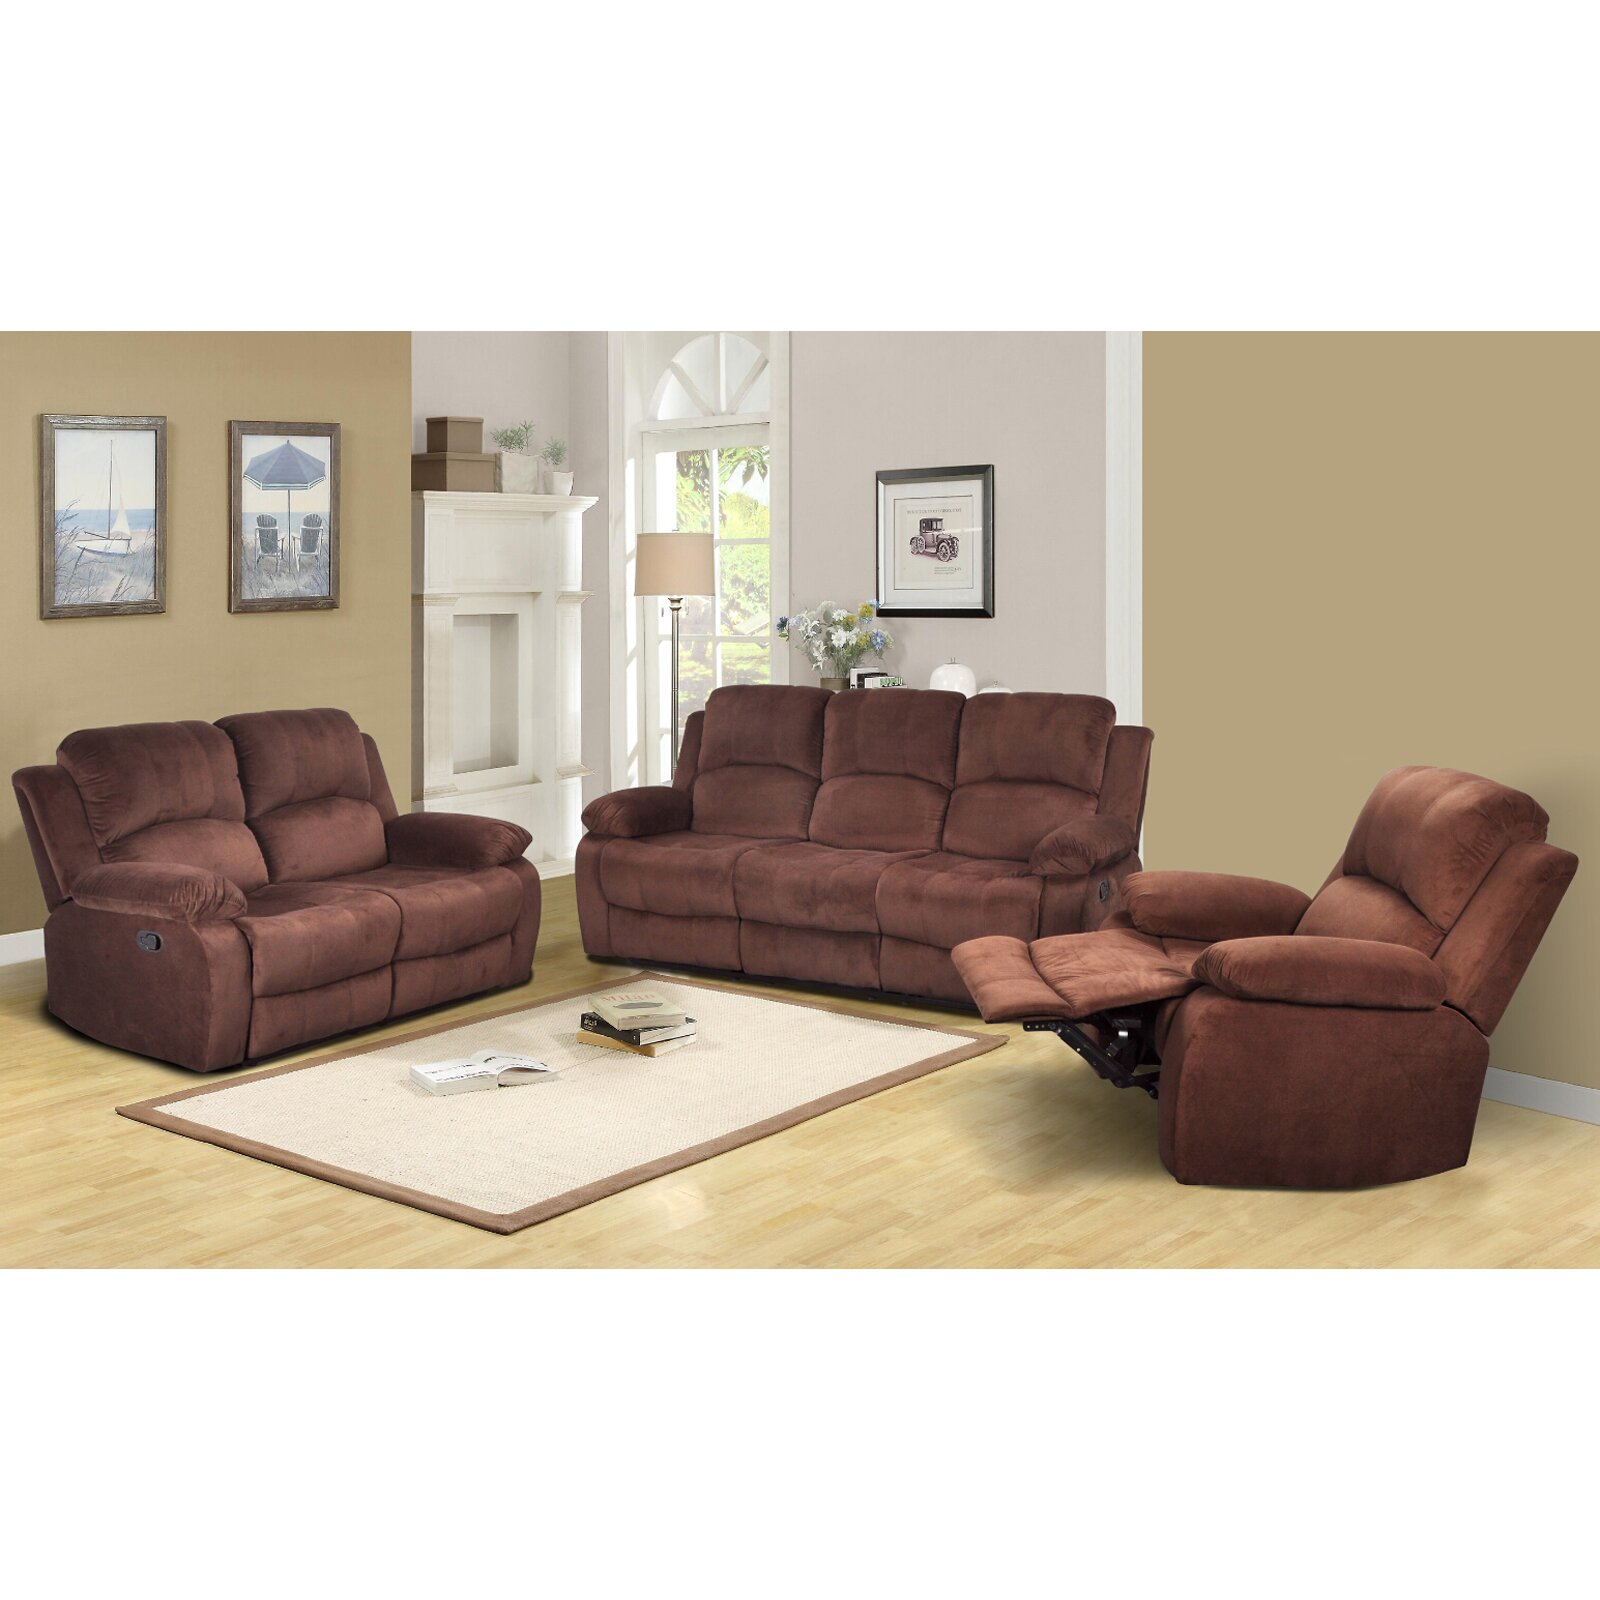 beverly fine furniture denver 3 piece microfiber reclining